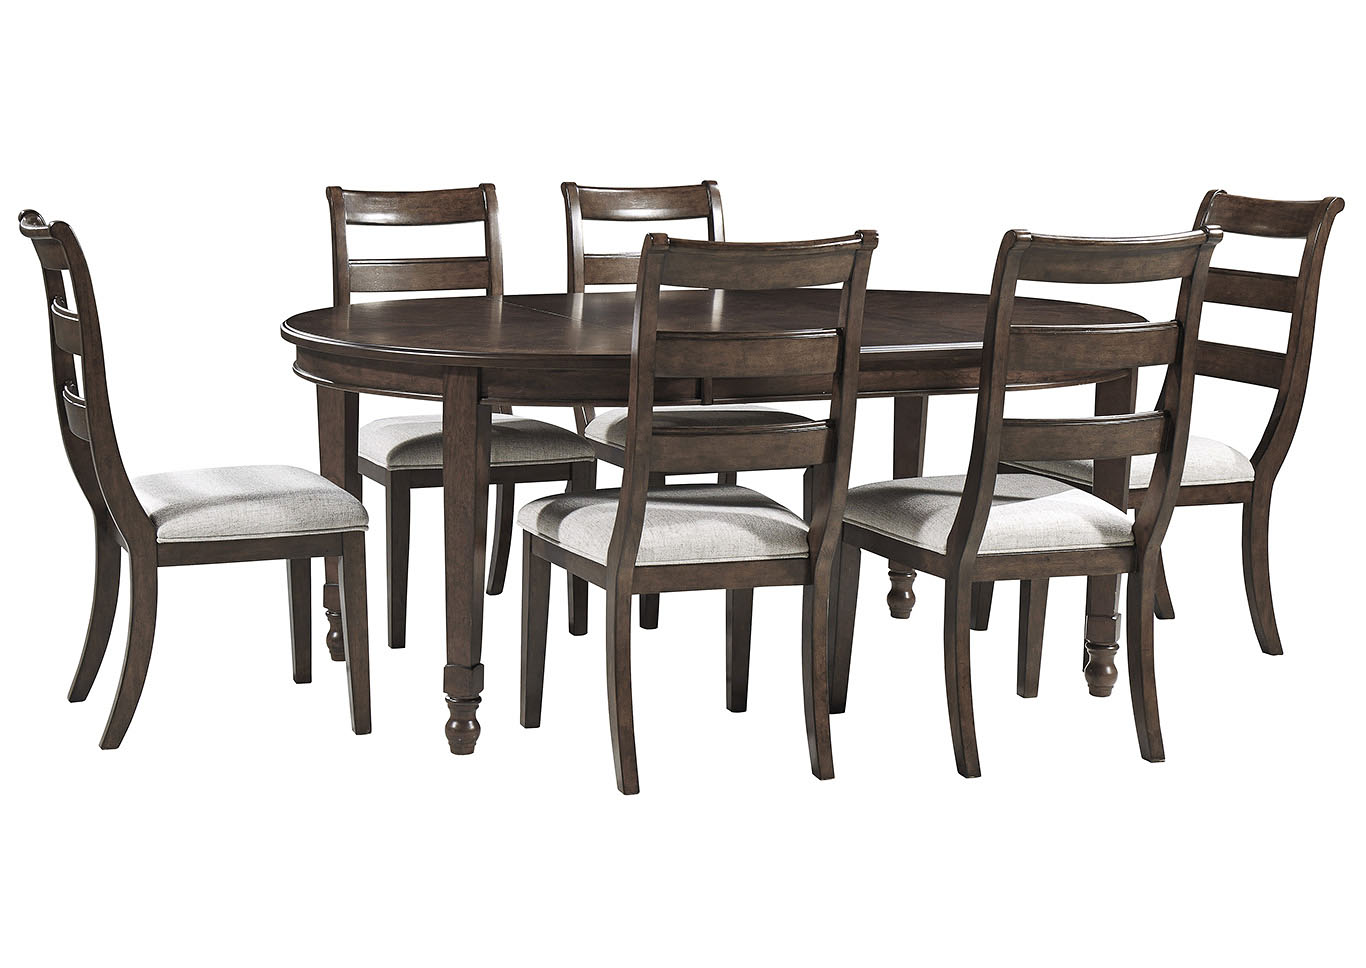 Adinton Reddish Brown Dining Extendable Table W 6 Side Chair The Furniture Shop Duncanville Tx